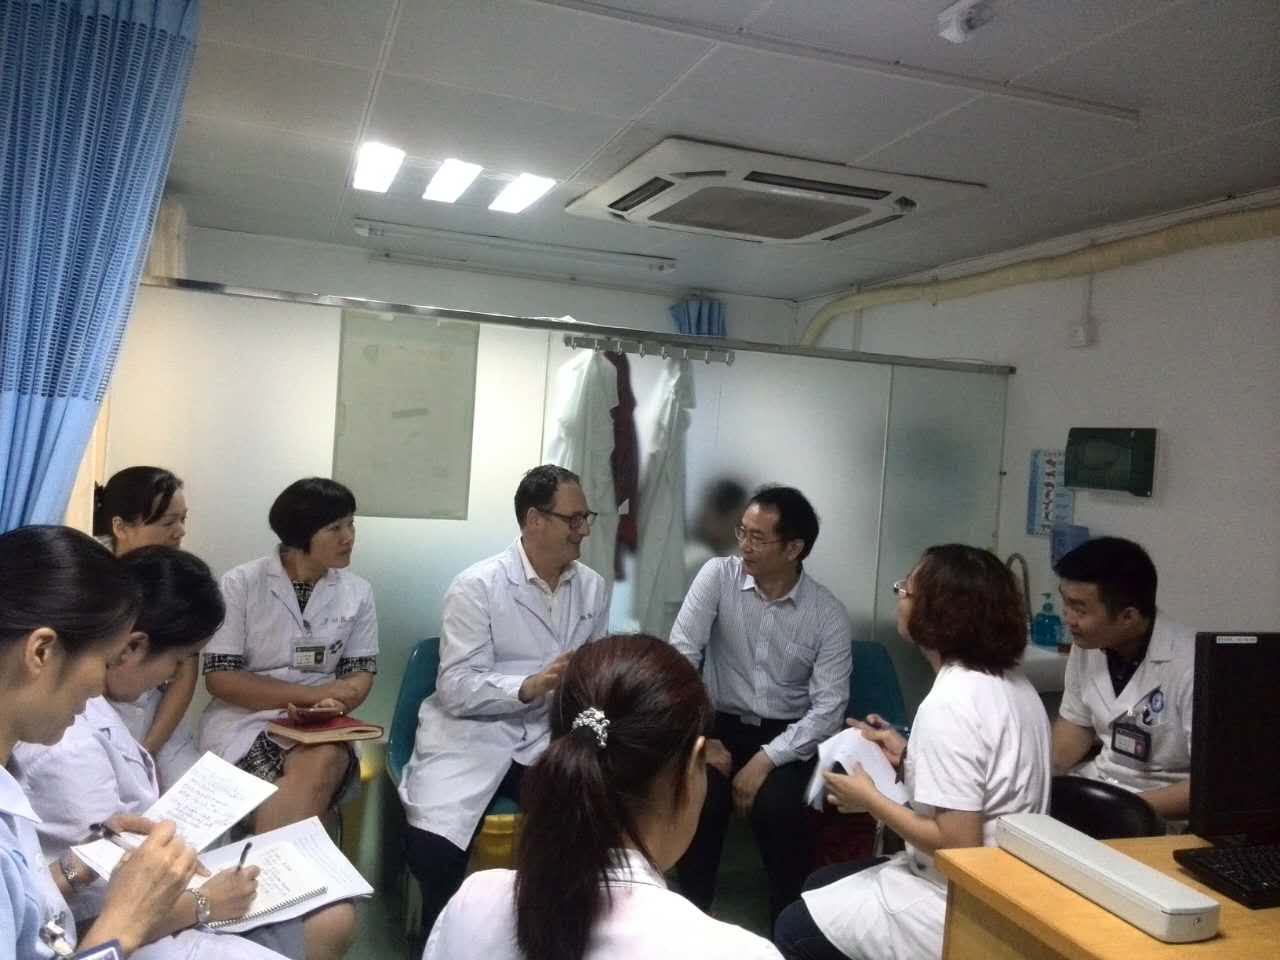 Discussing the patient in between consultations